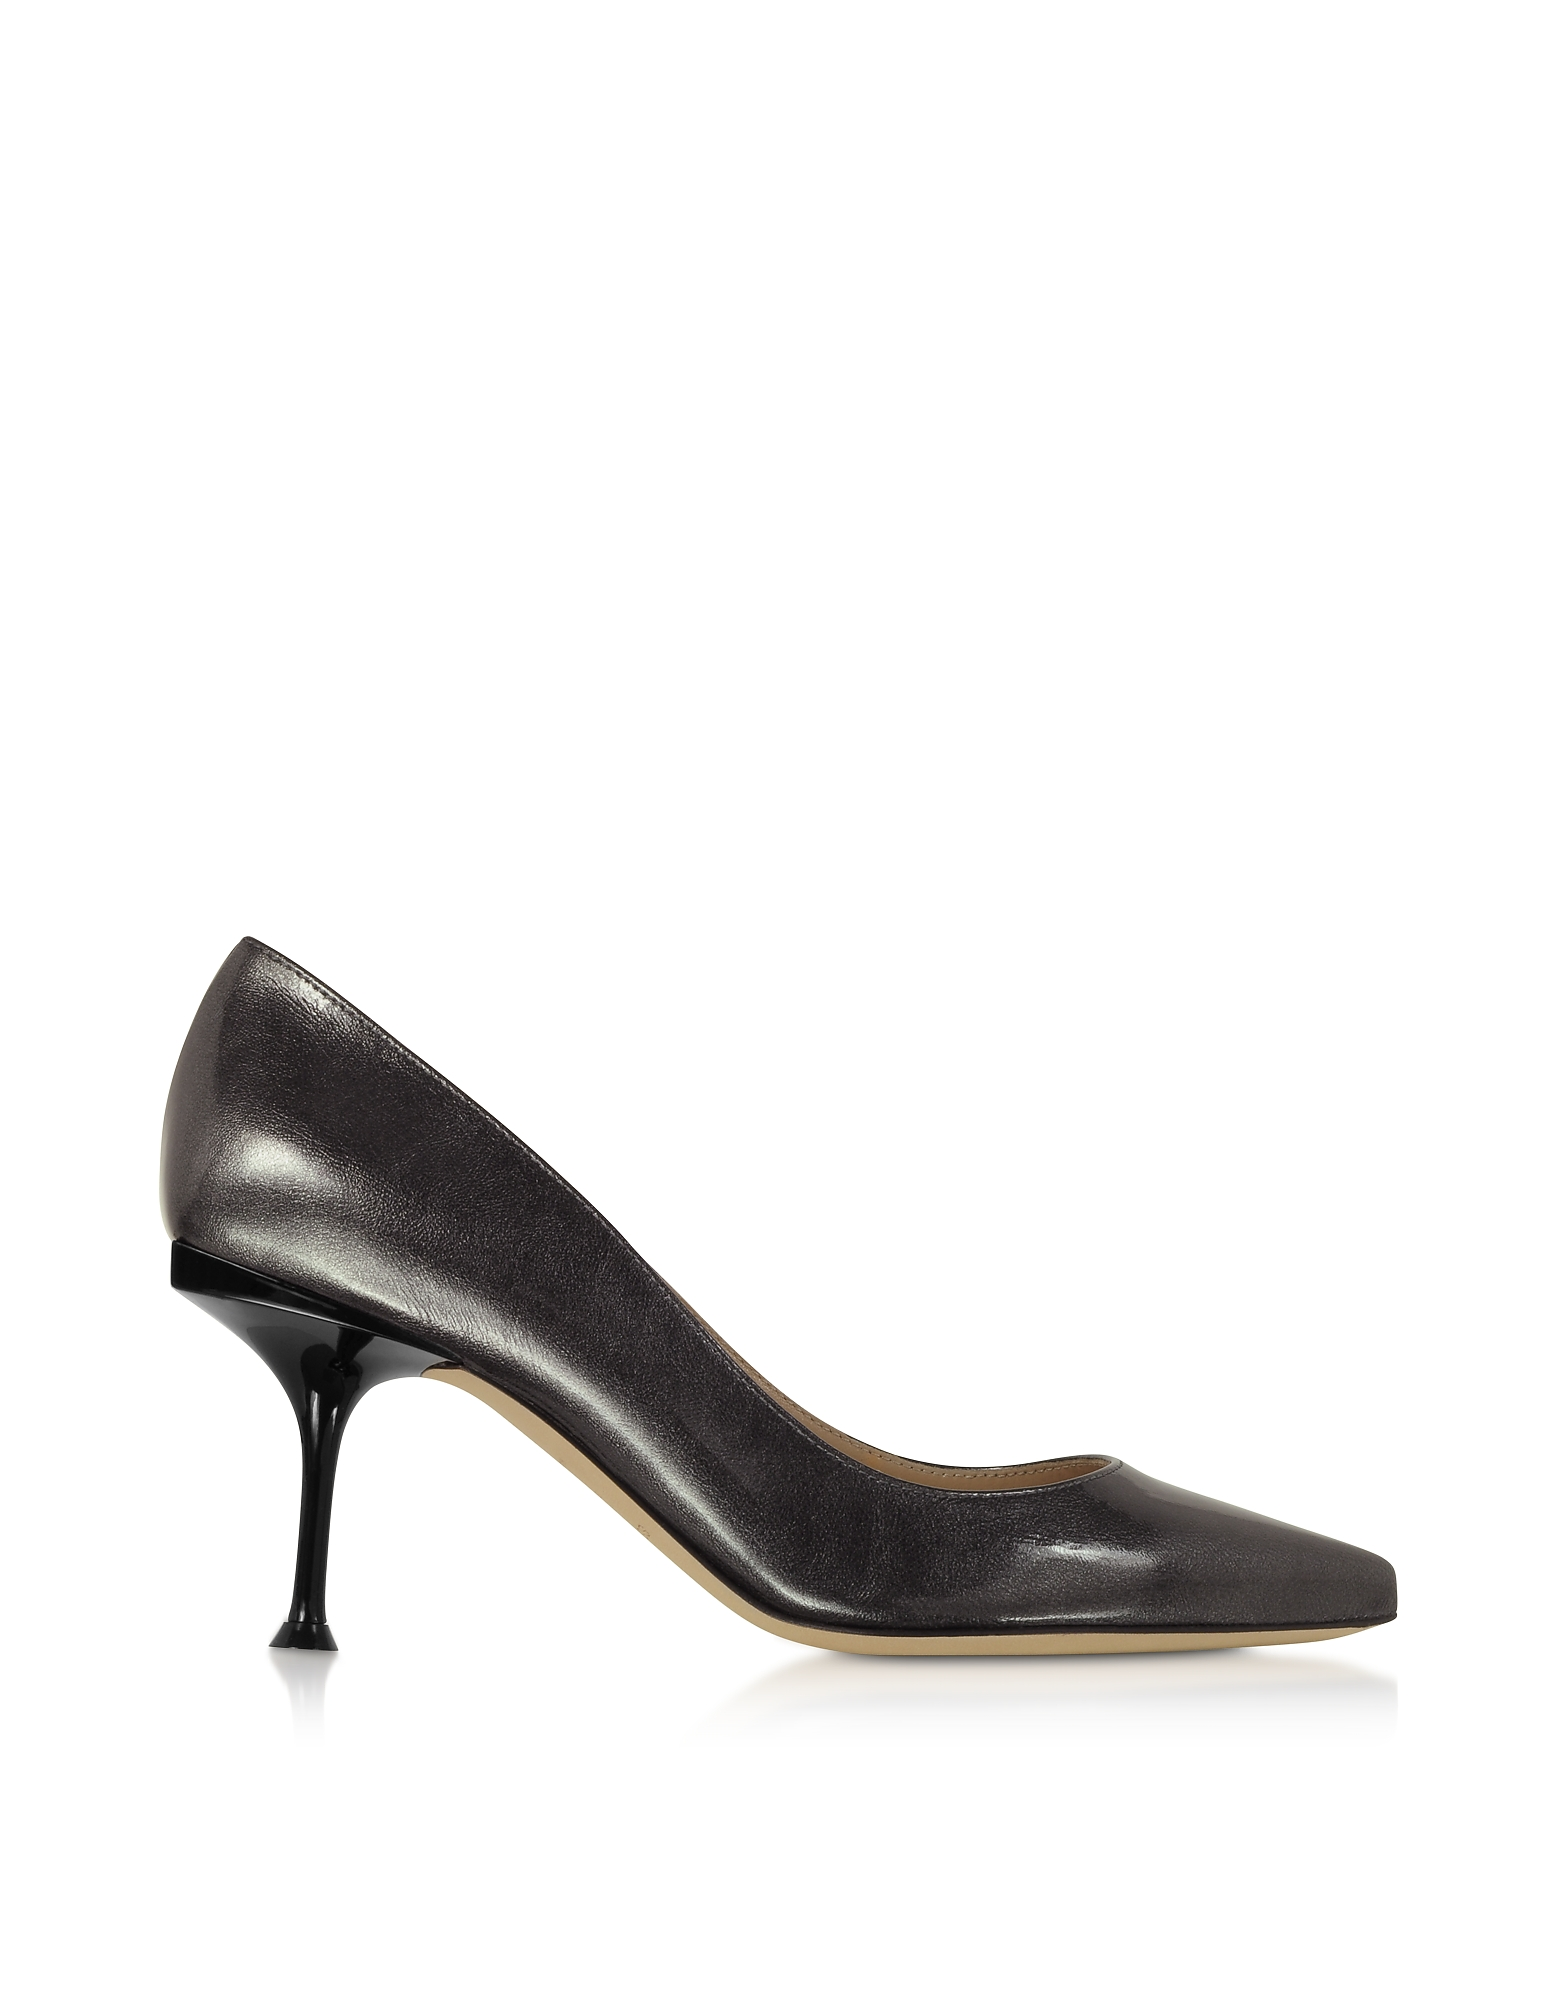 Glacee Anthracite Metallic Leather Pumps